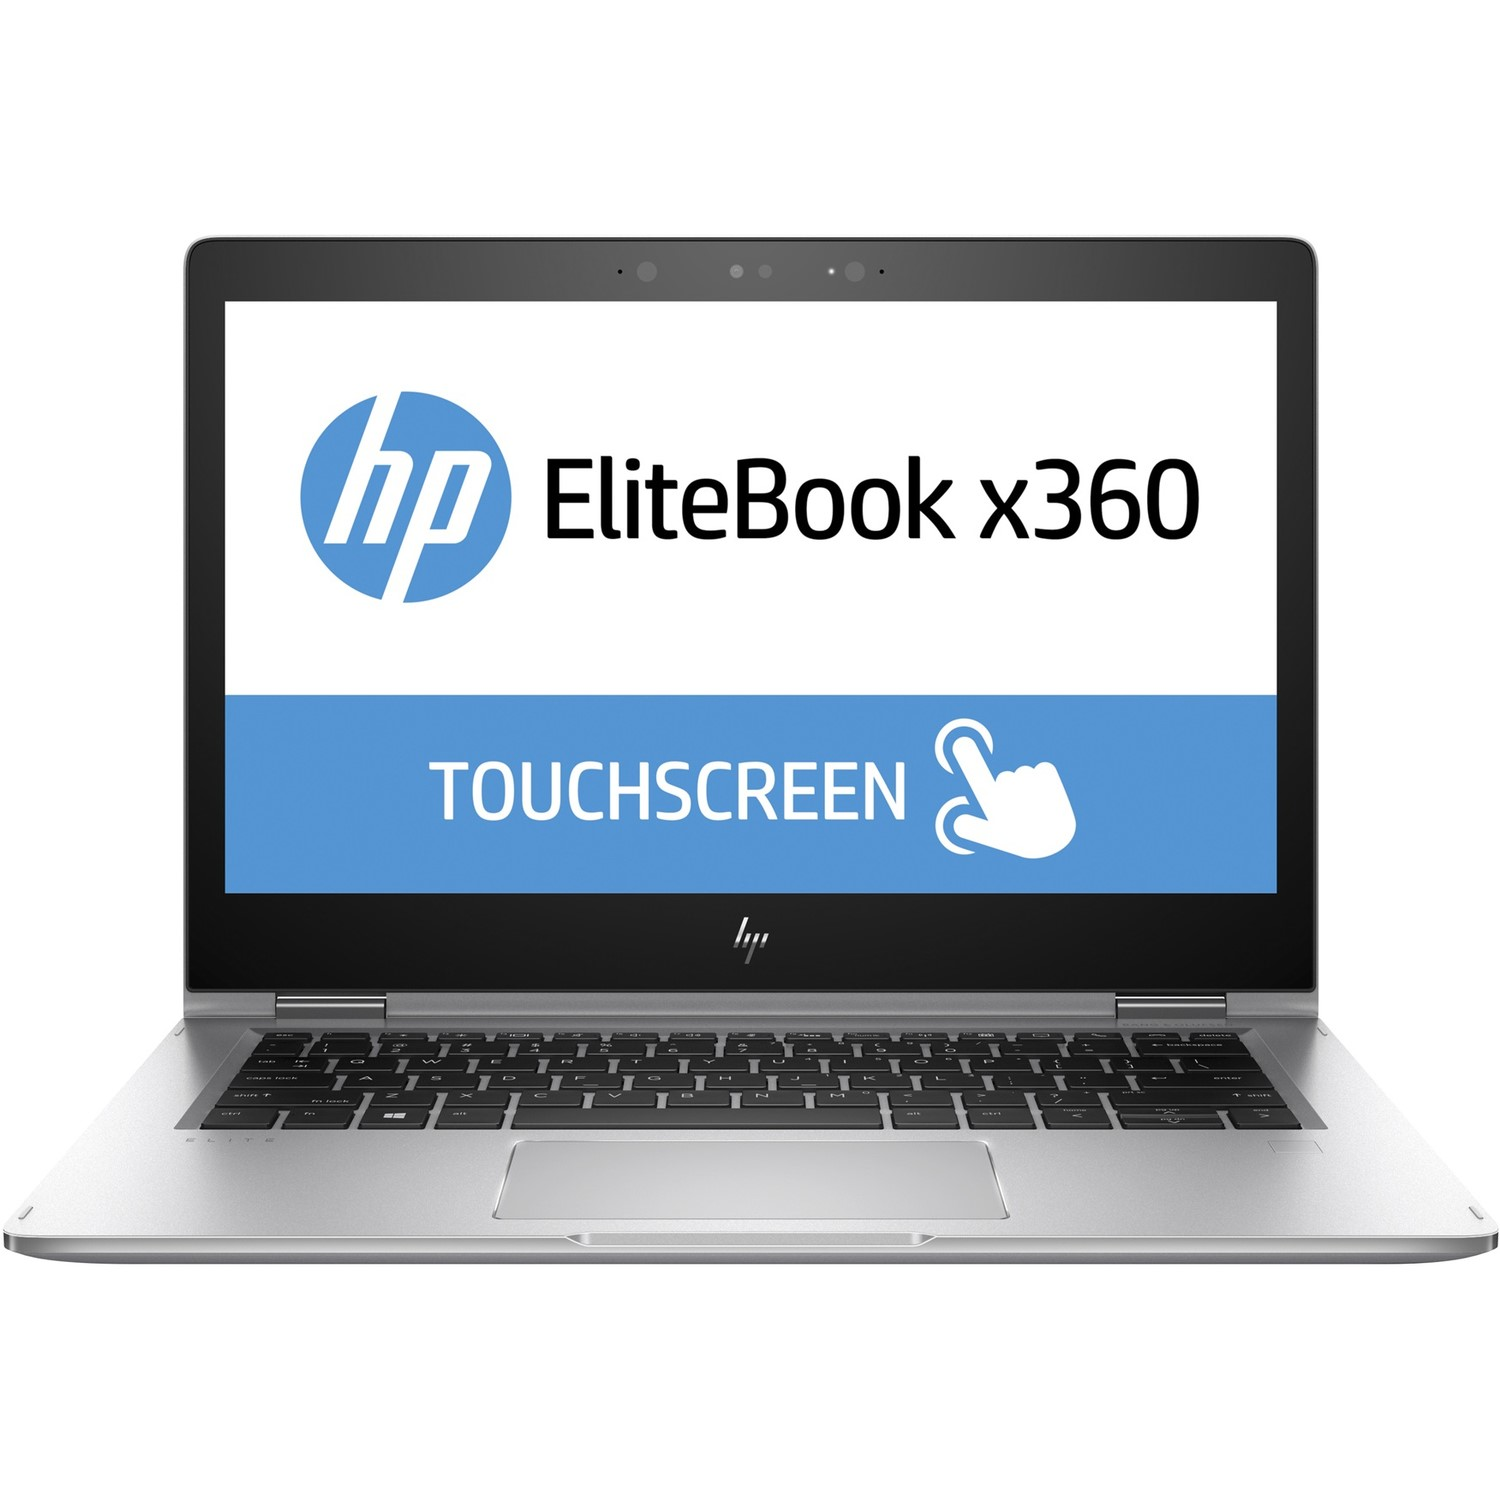 Hp EliteBook x360 1030 G2 Core i5-7200U 8GB 256GB SSD 13 3 Inch Windows 10  Professional Laptop